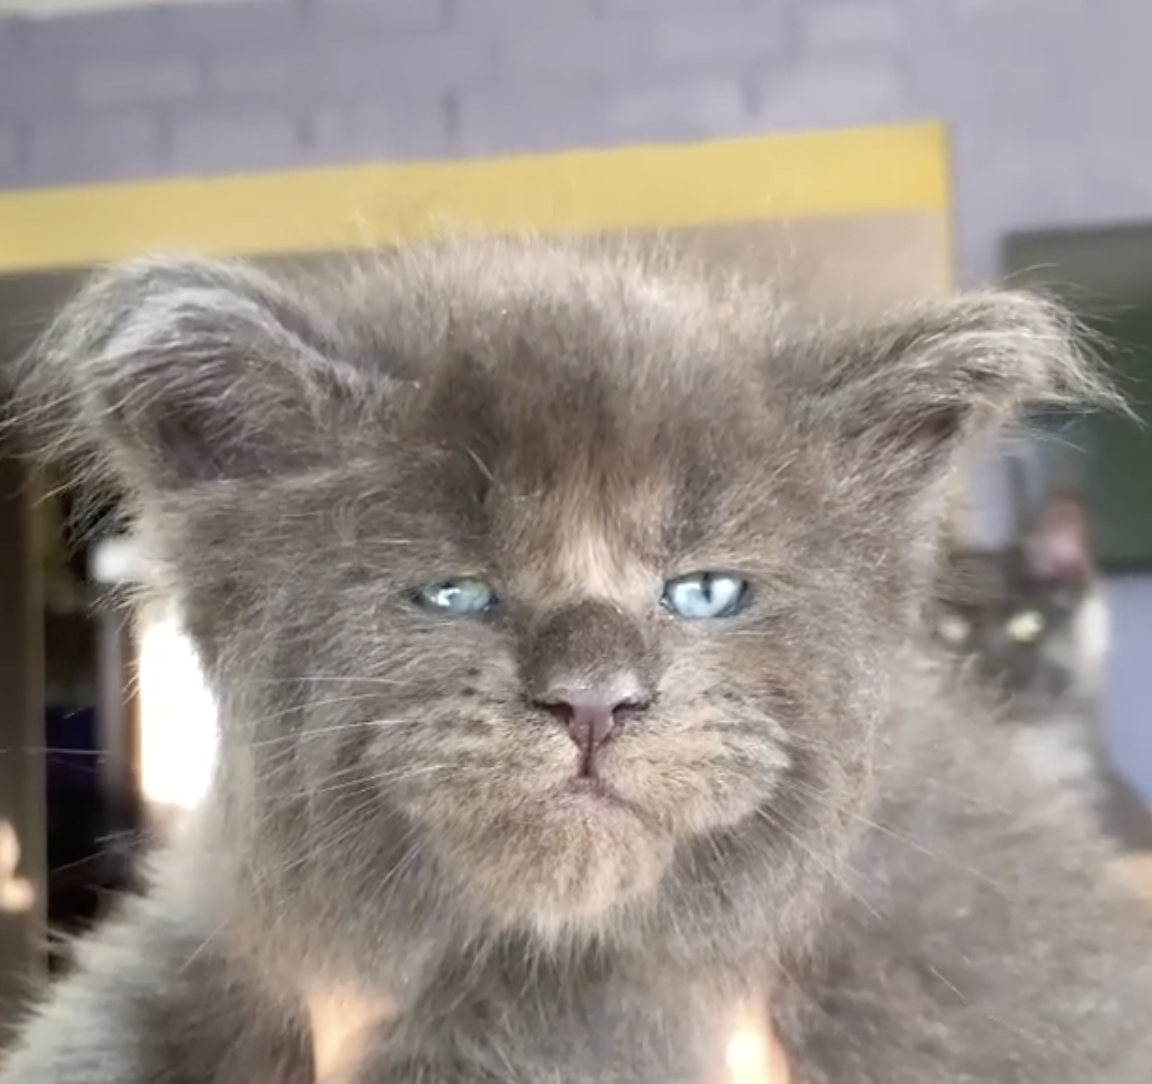 Entire Litter Of 5 Kittens Was Born With Grumpy But Cute Faces